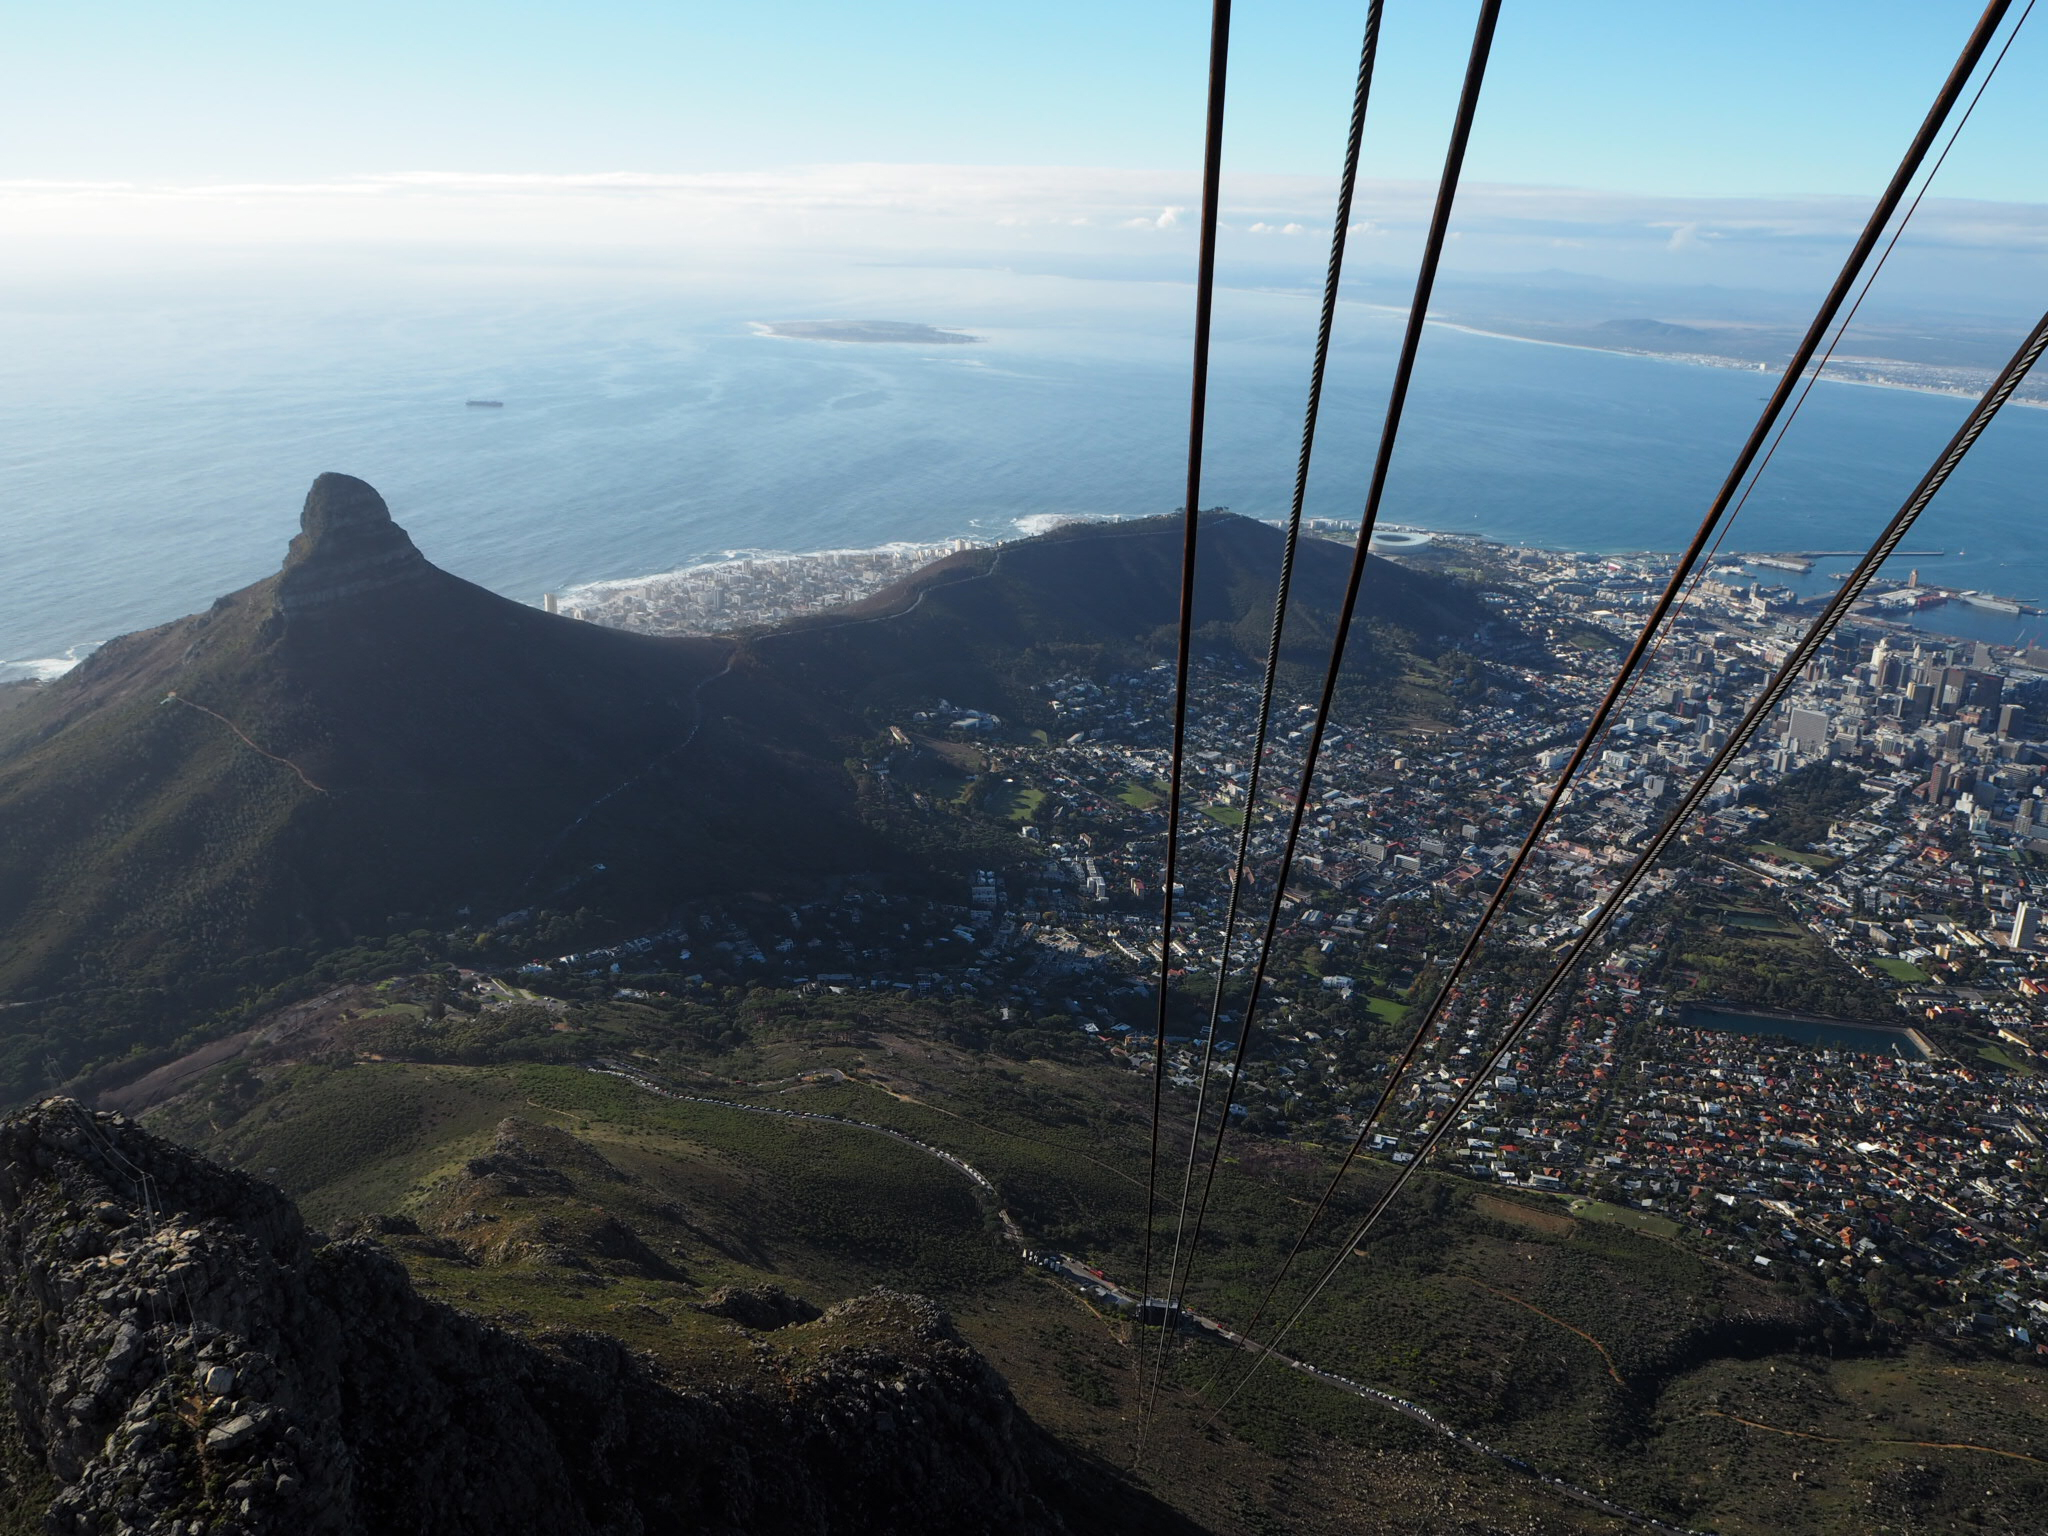 Views of Lion's Head and the Central Business District of Cape Town from the cable car.